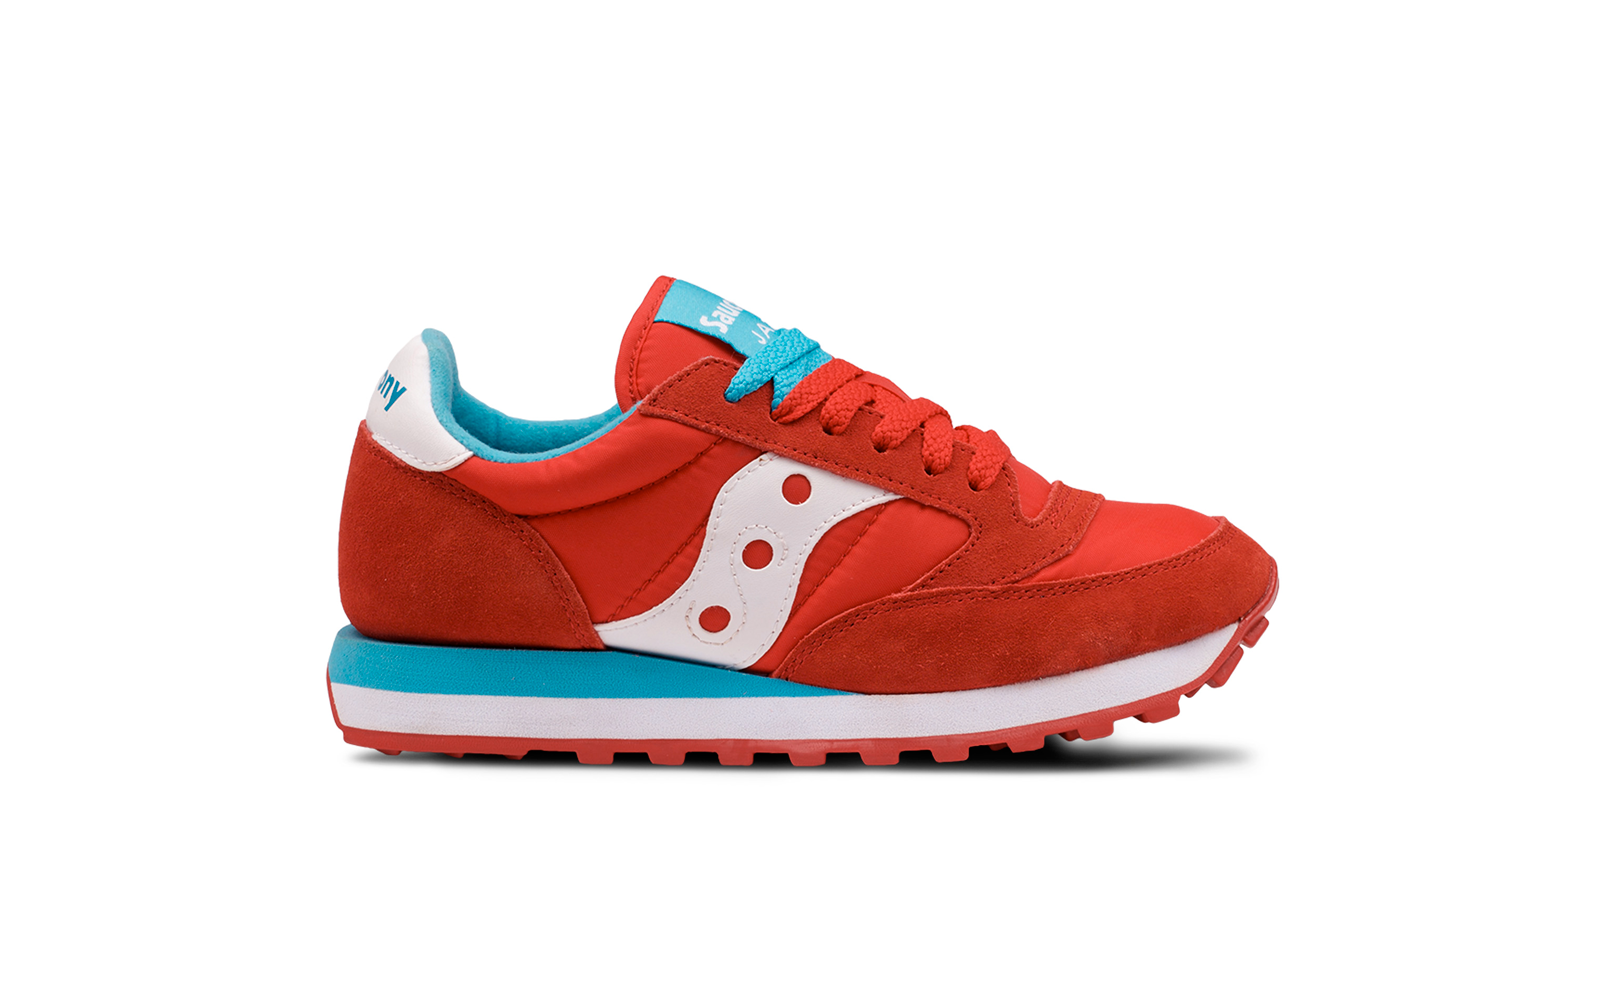 SAUCONY ORIGINALS glamour in rosso, sneakers per le passeggiate metropolitane euro 105 www.sauconyoriginals.it